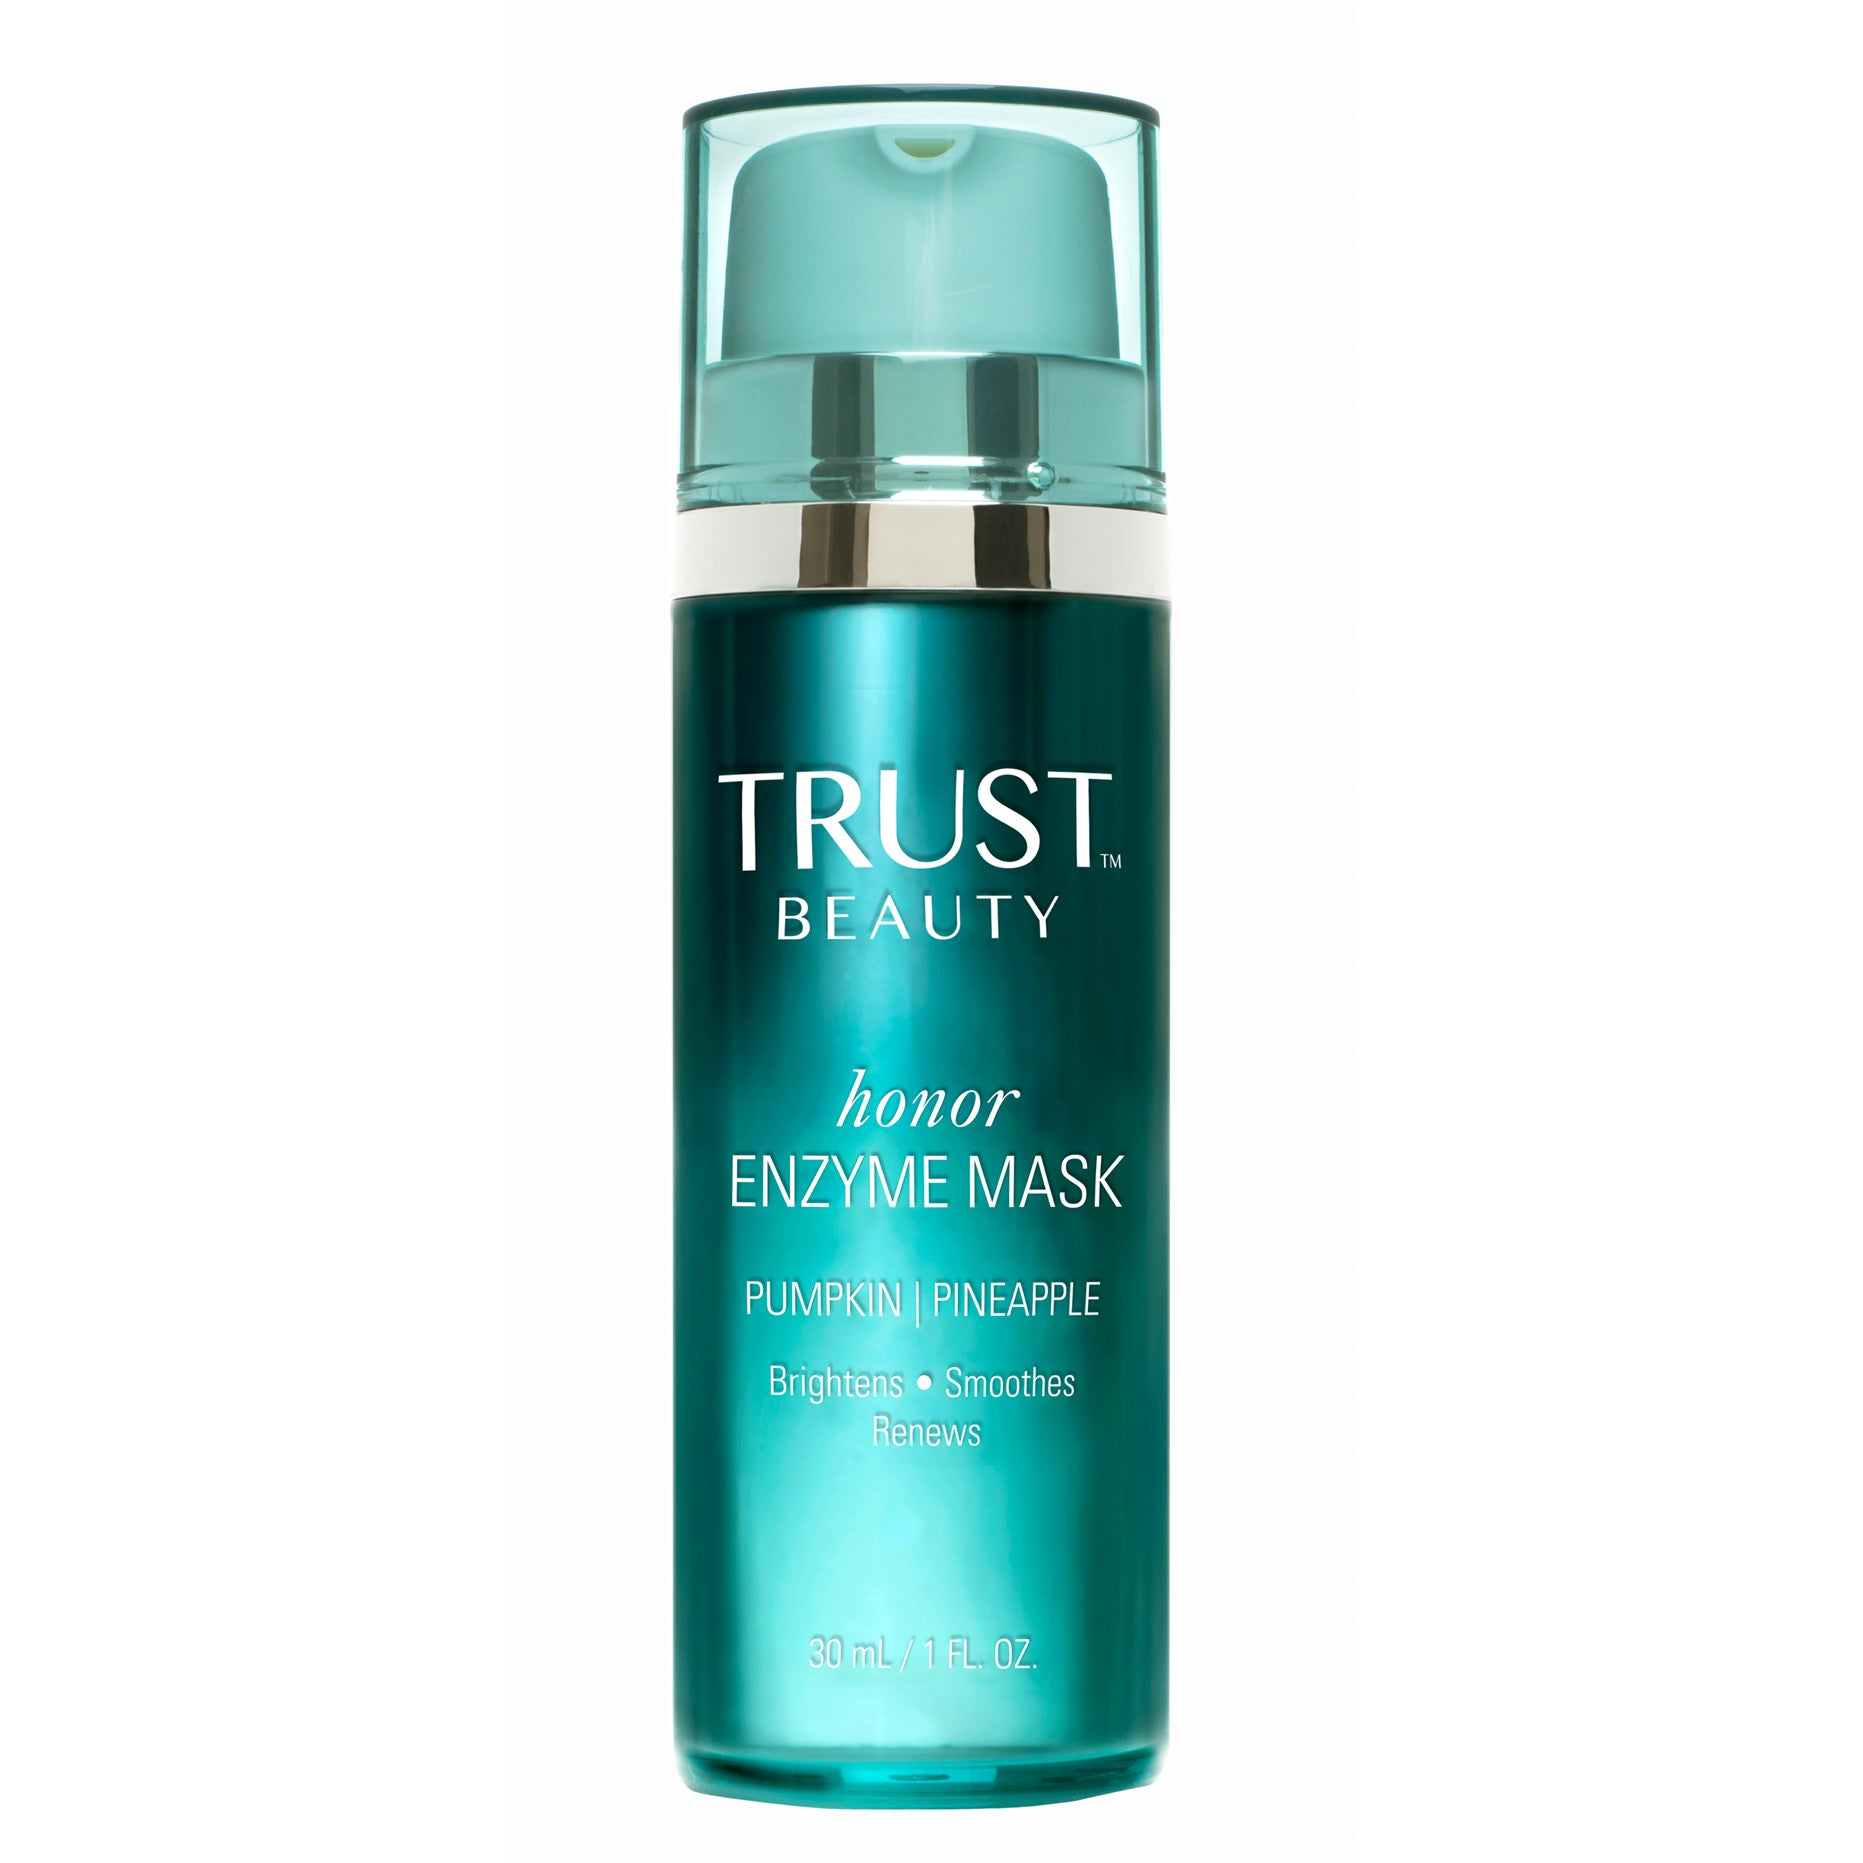 honor Enzyme Mask by TRUST Beauty